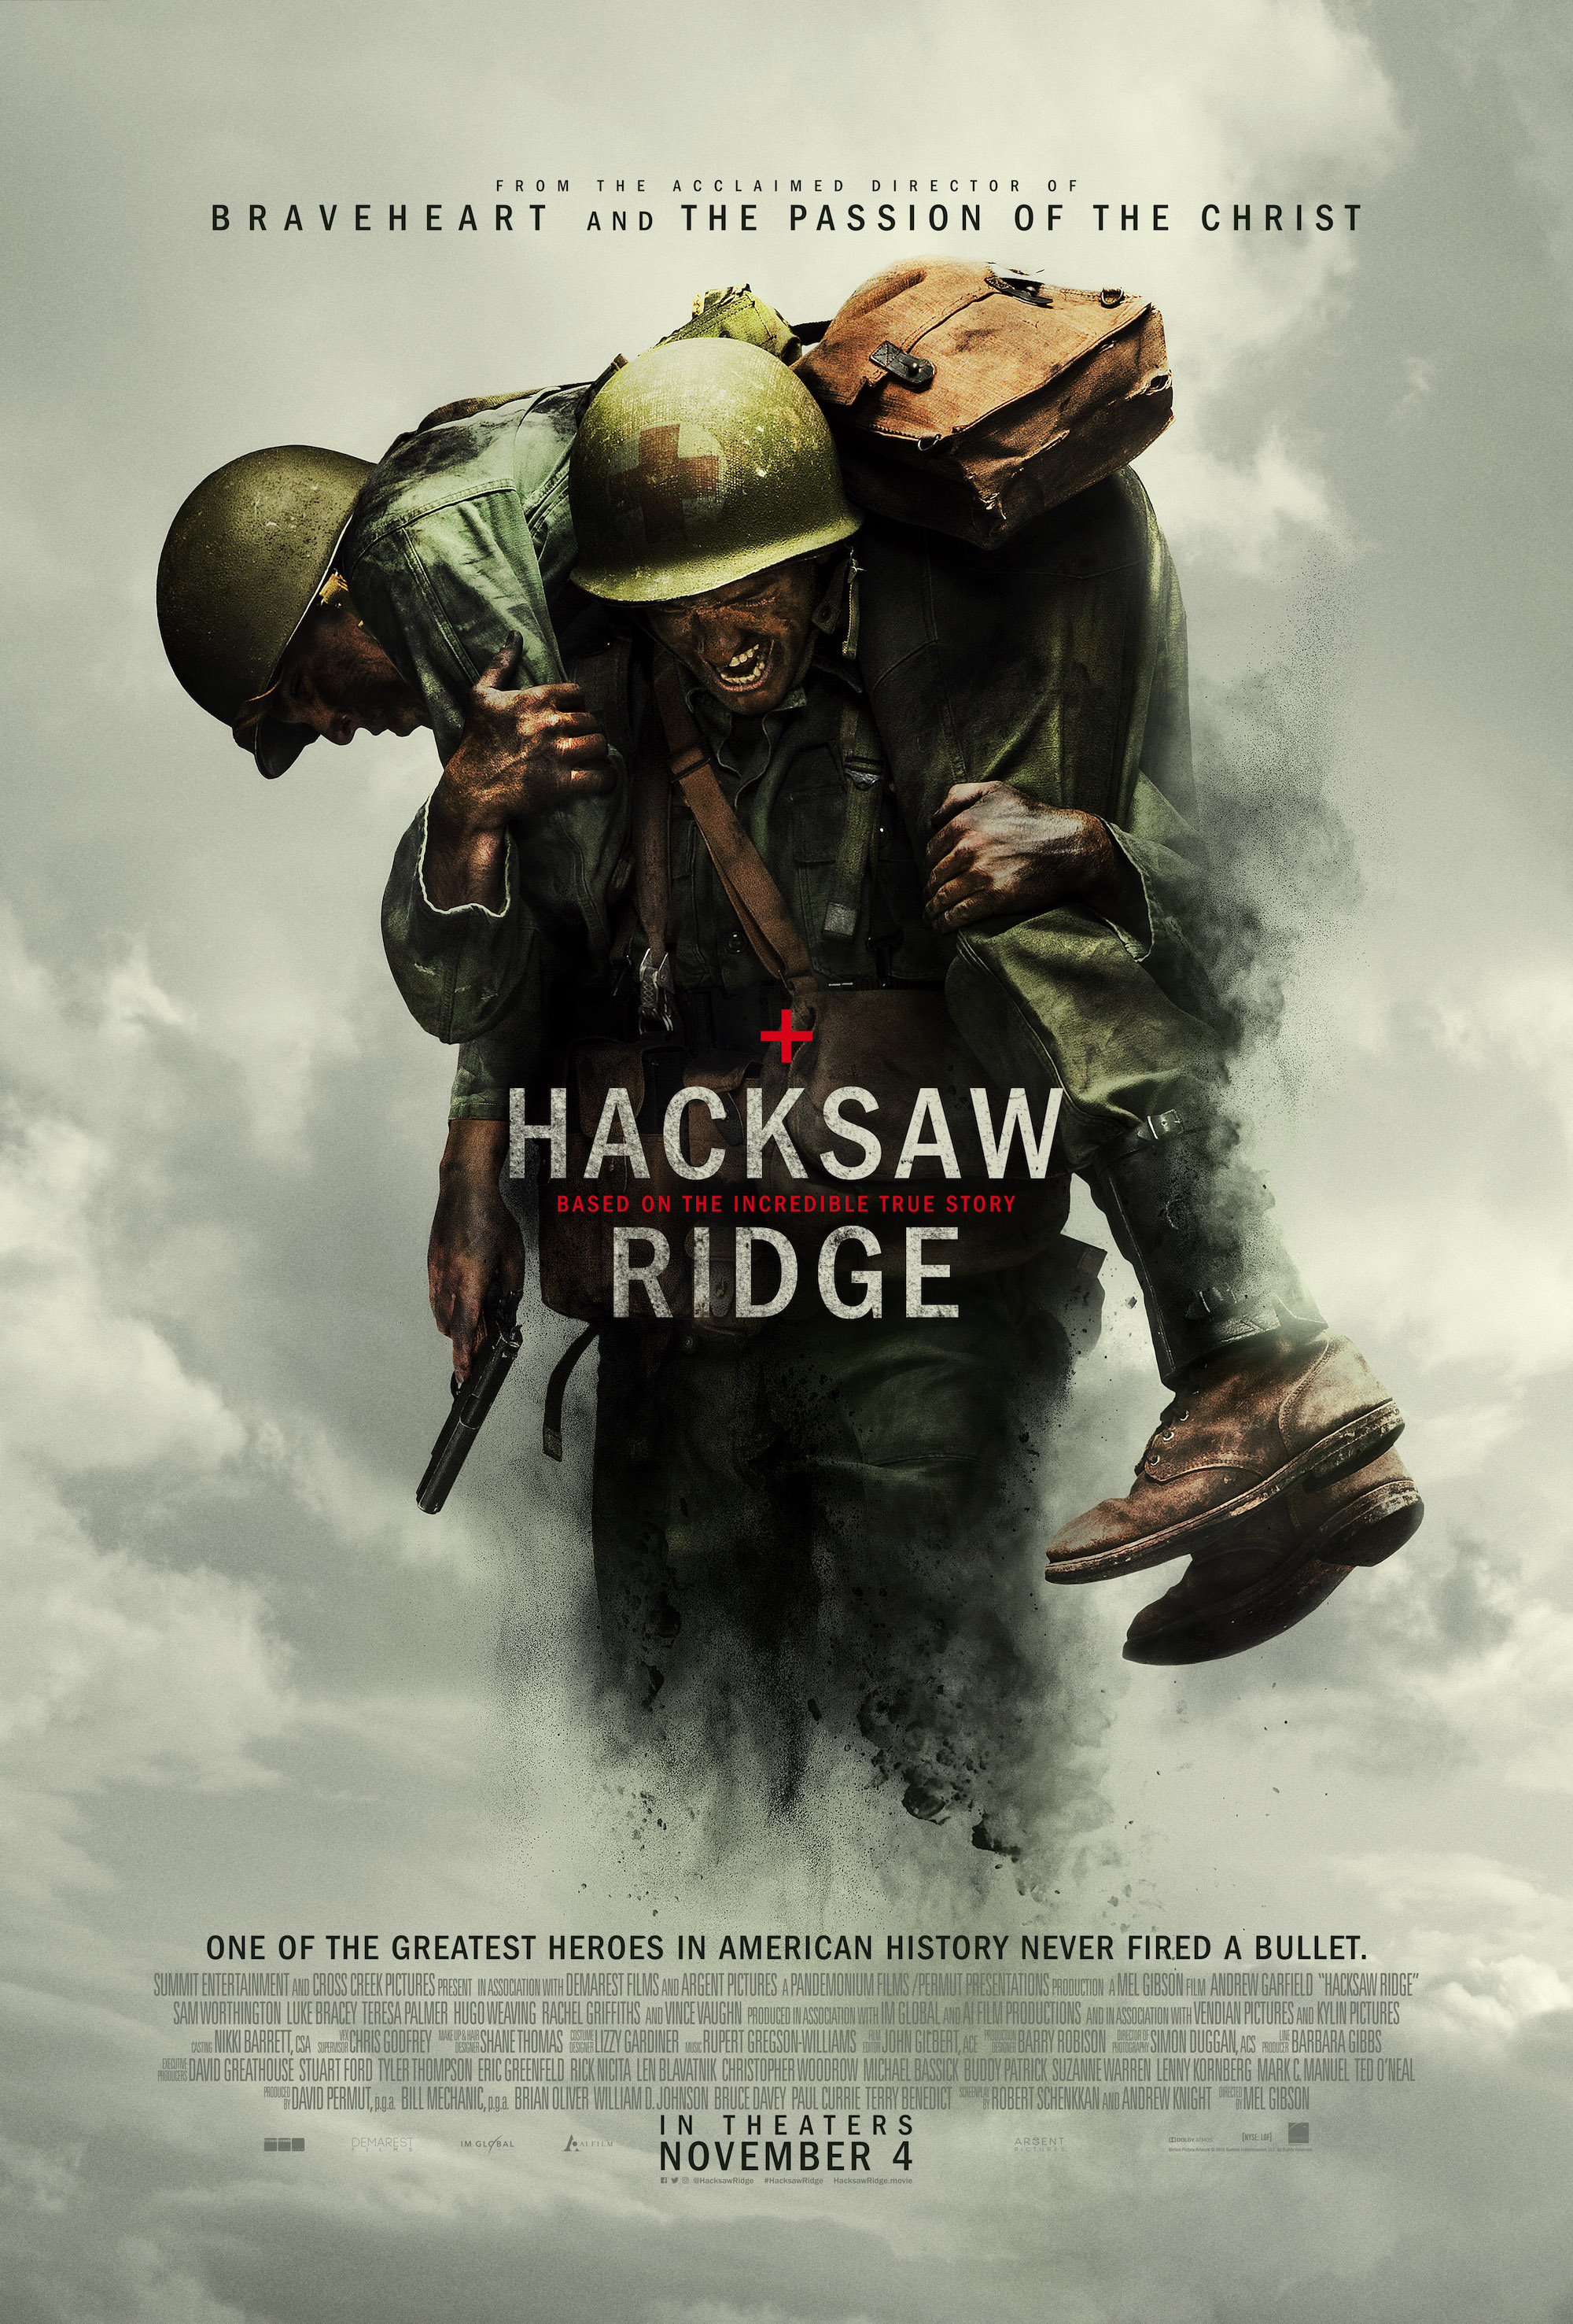 Win a director signed copy movie poster from HACKSAW RIDGE.